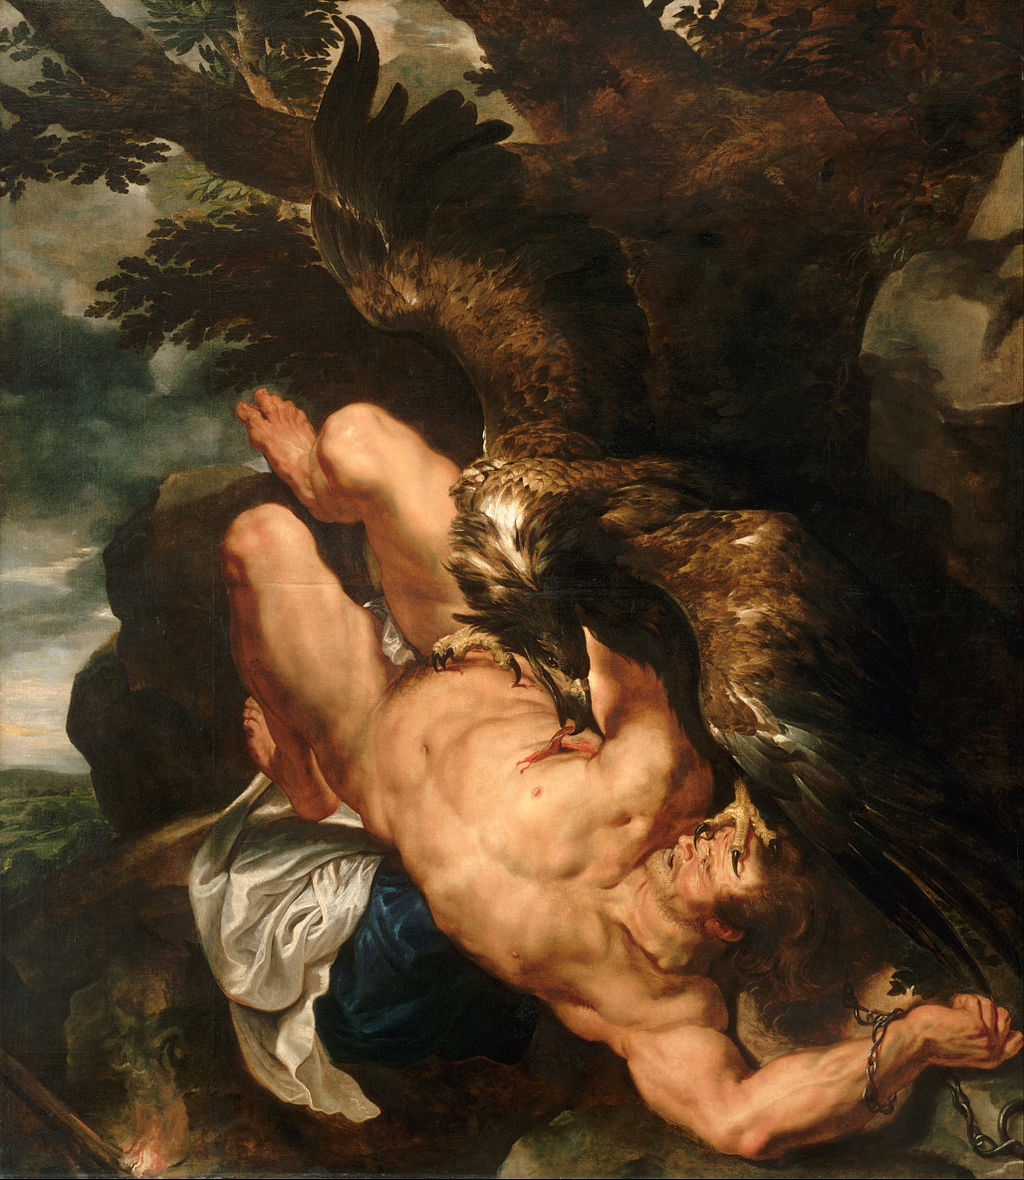 Prometheus Bound by Peter Paul Rubens in the Philadelphia Museum of Art